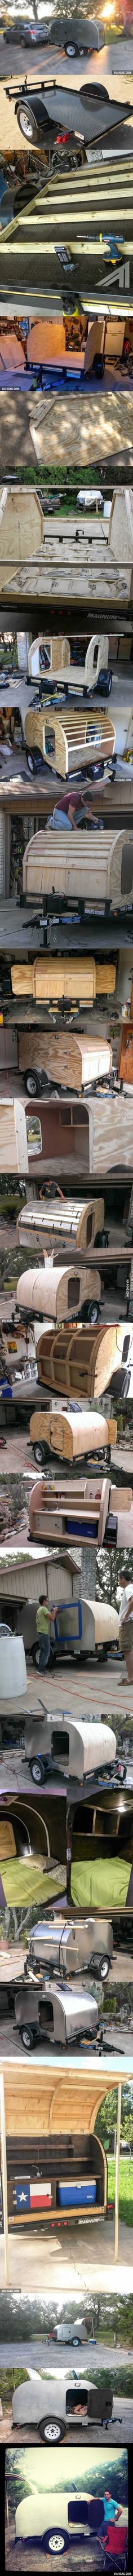 Teardrop trailer build.